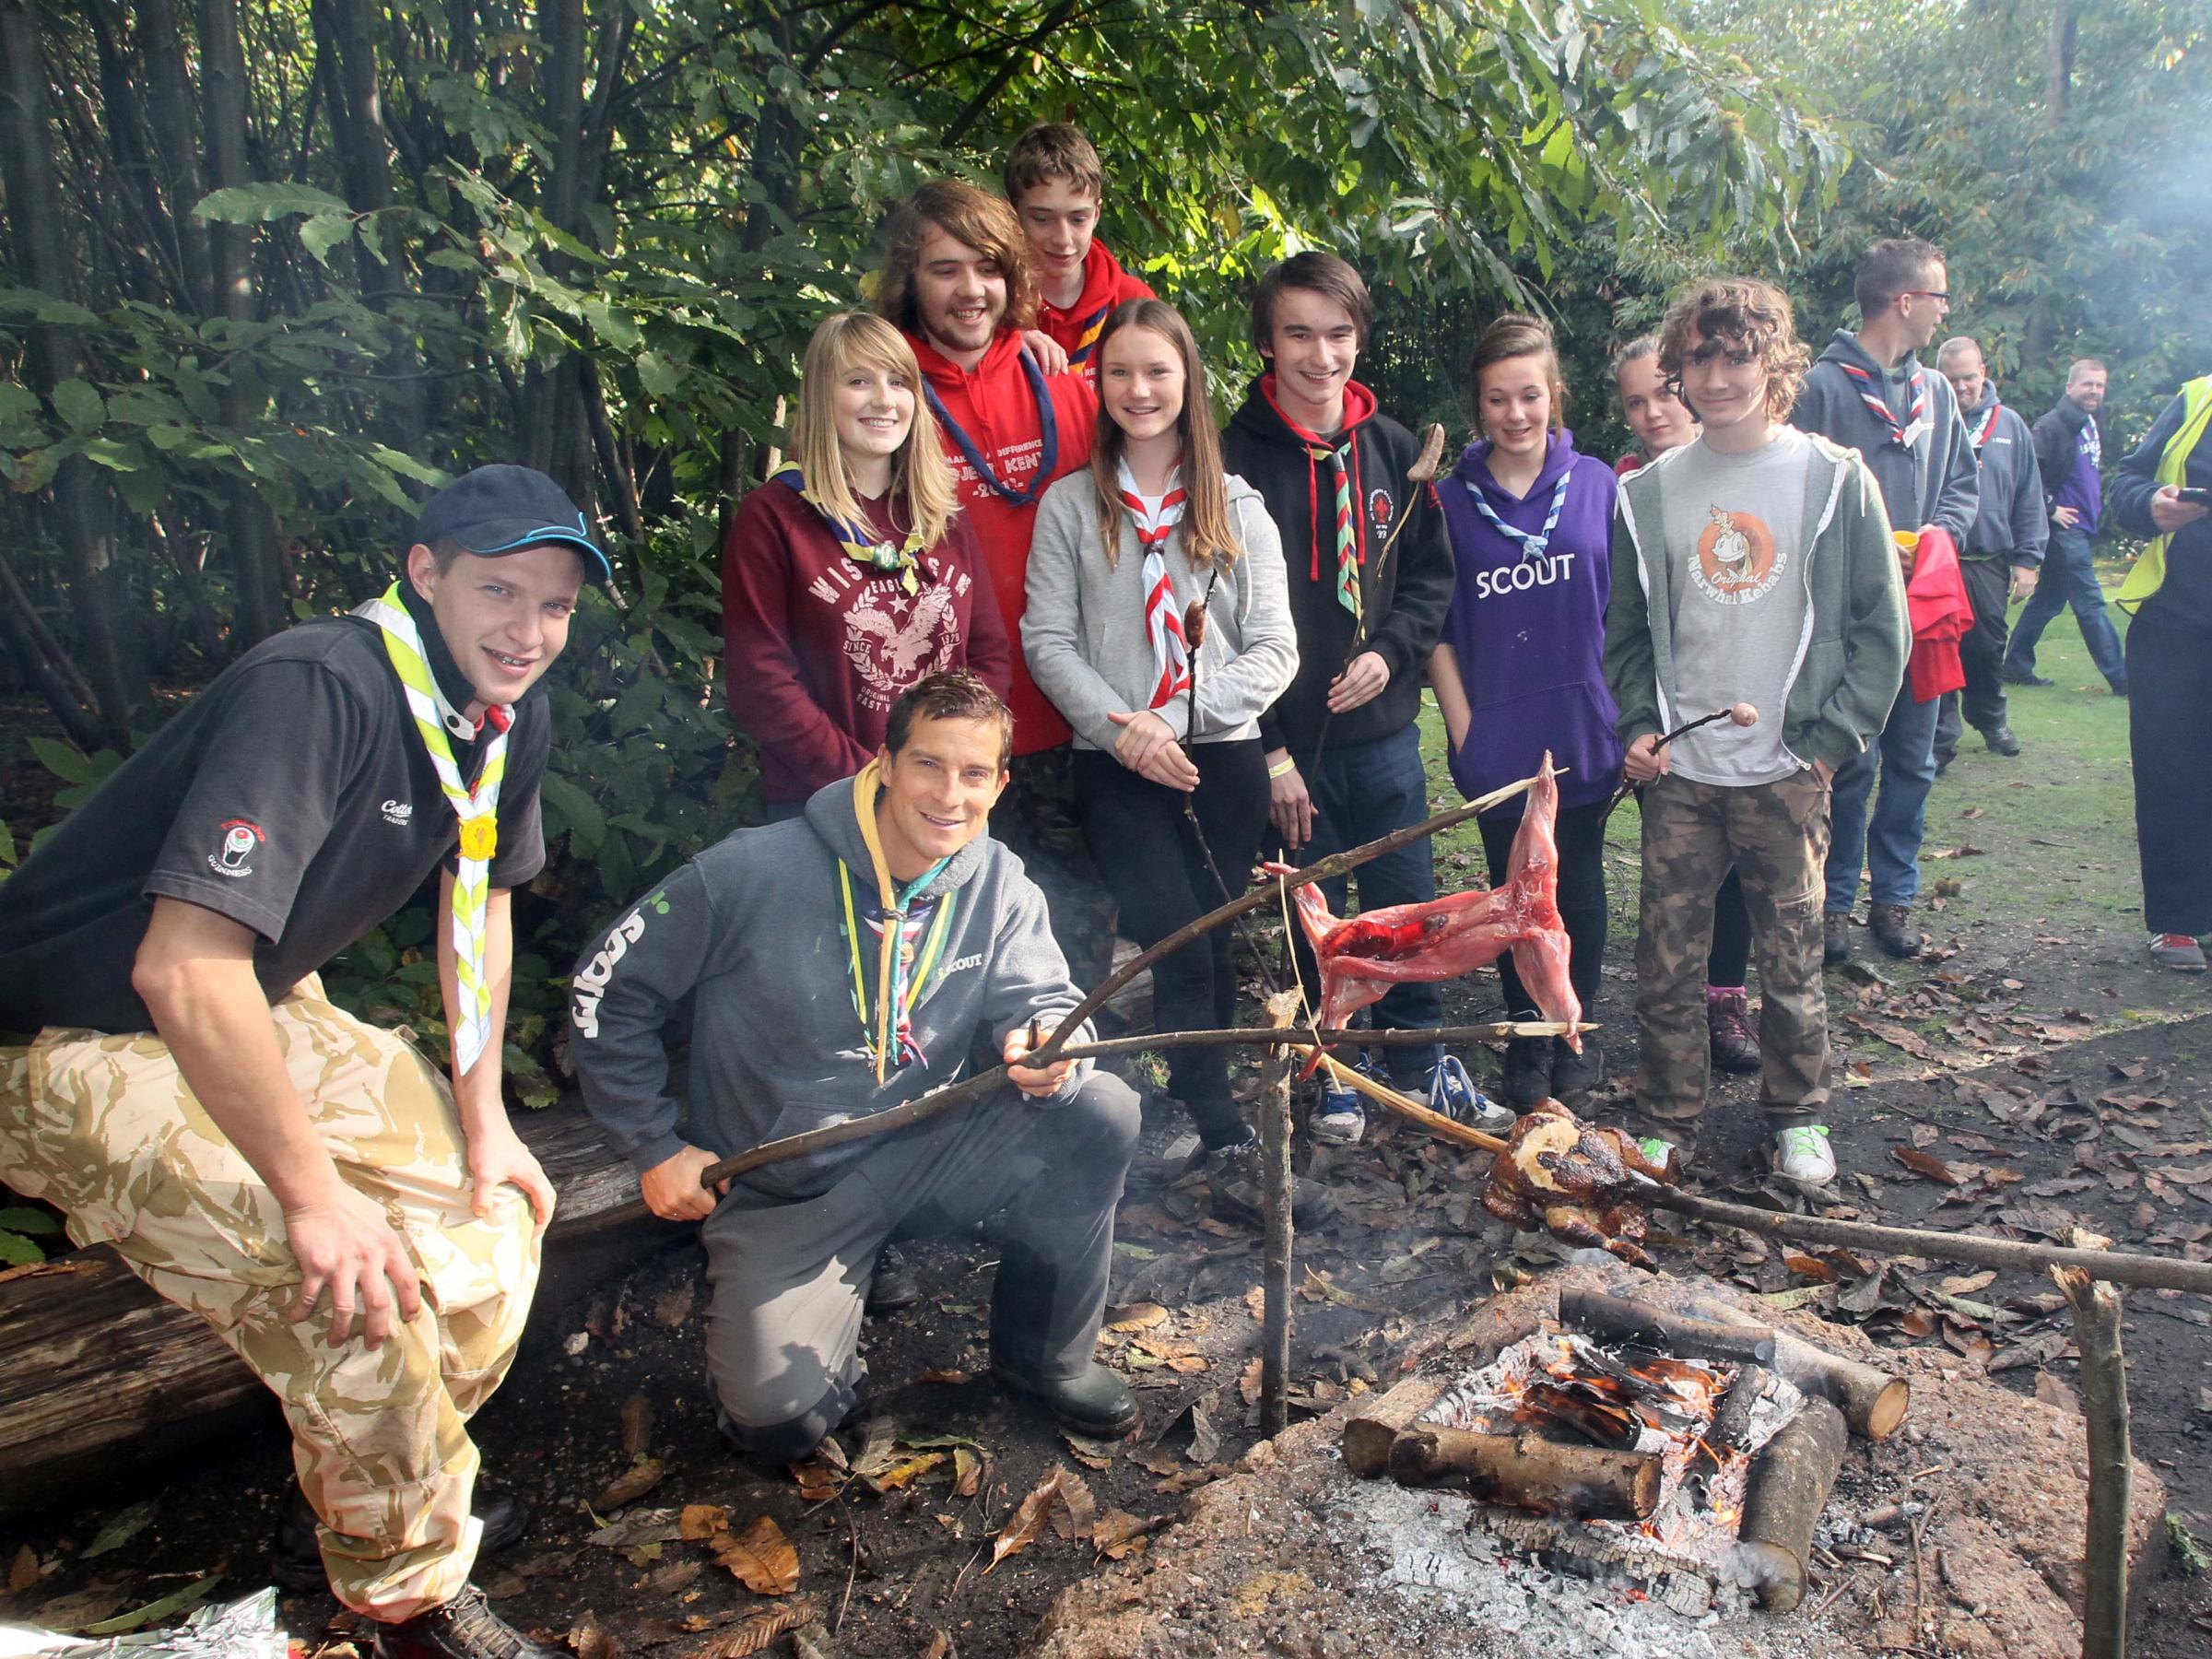 Bear in the woods – Bear Grylls at Thorrington Scout camp, and, inset, Holly and Charlie Luckin and Billy Piercy